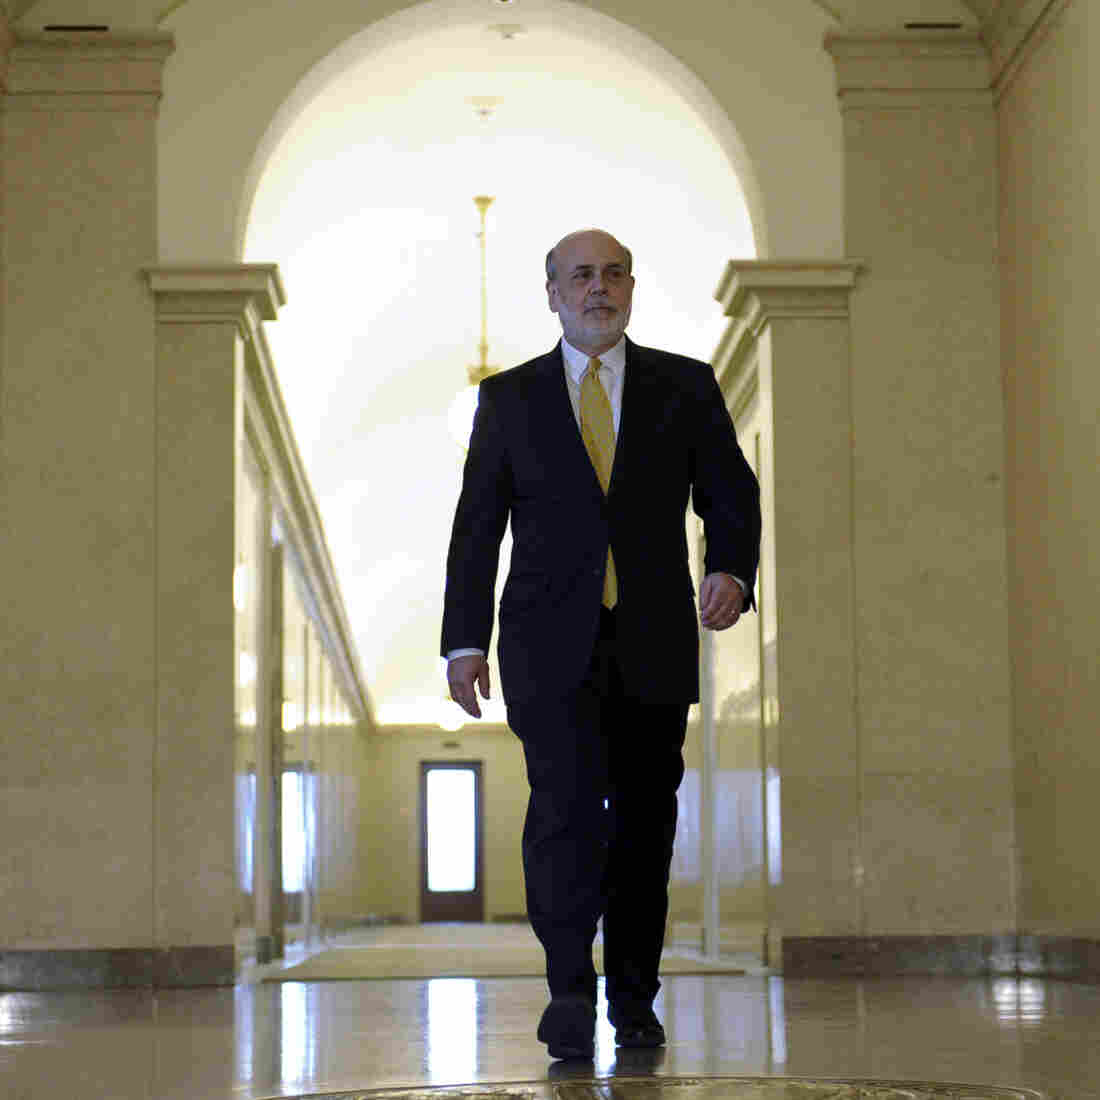 Ben Bernanke stepped down as the chairman of the Federal Reserve in January. He told an audience in Chicago on Thursday that he has had trouble refinancing his home.